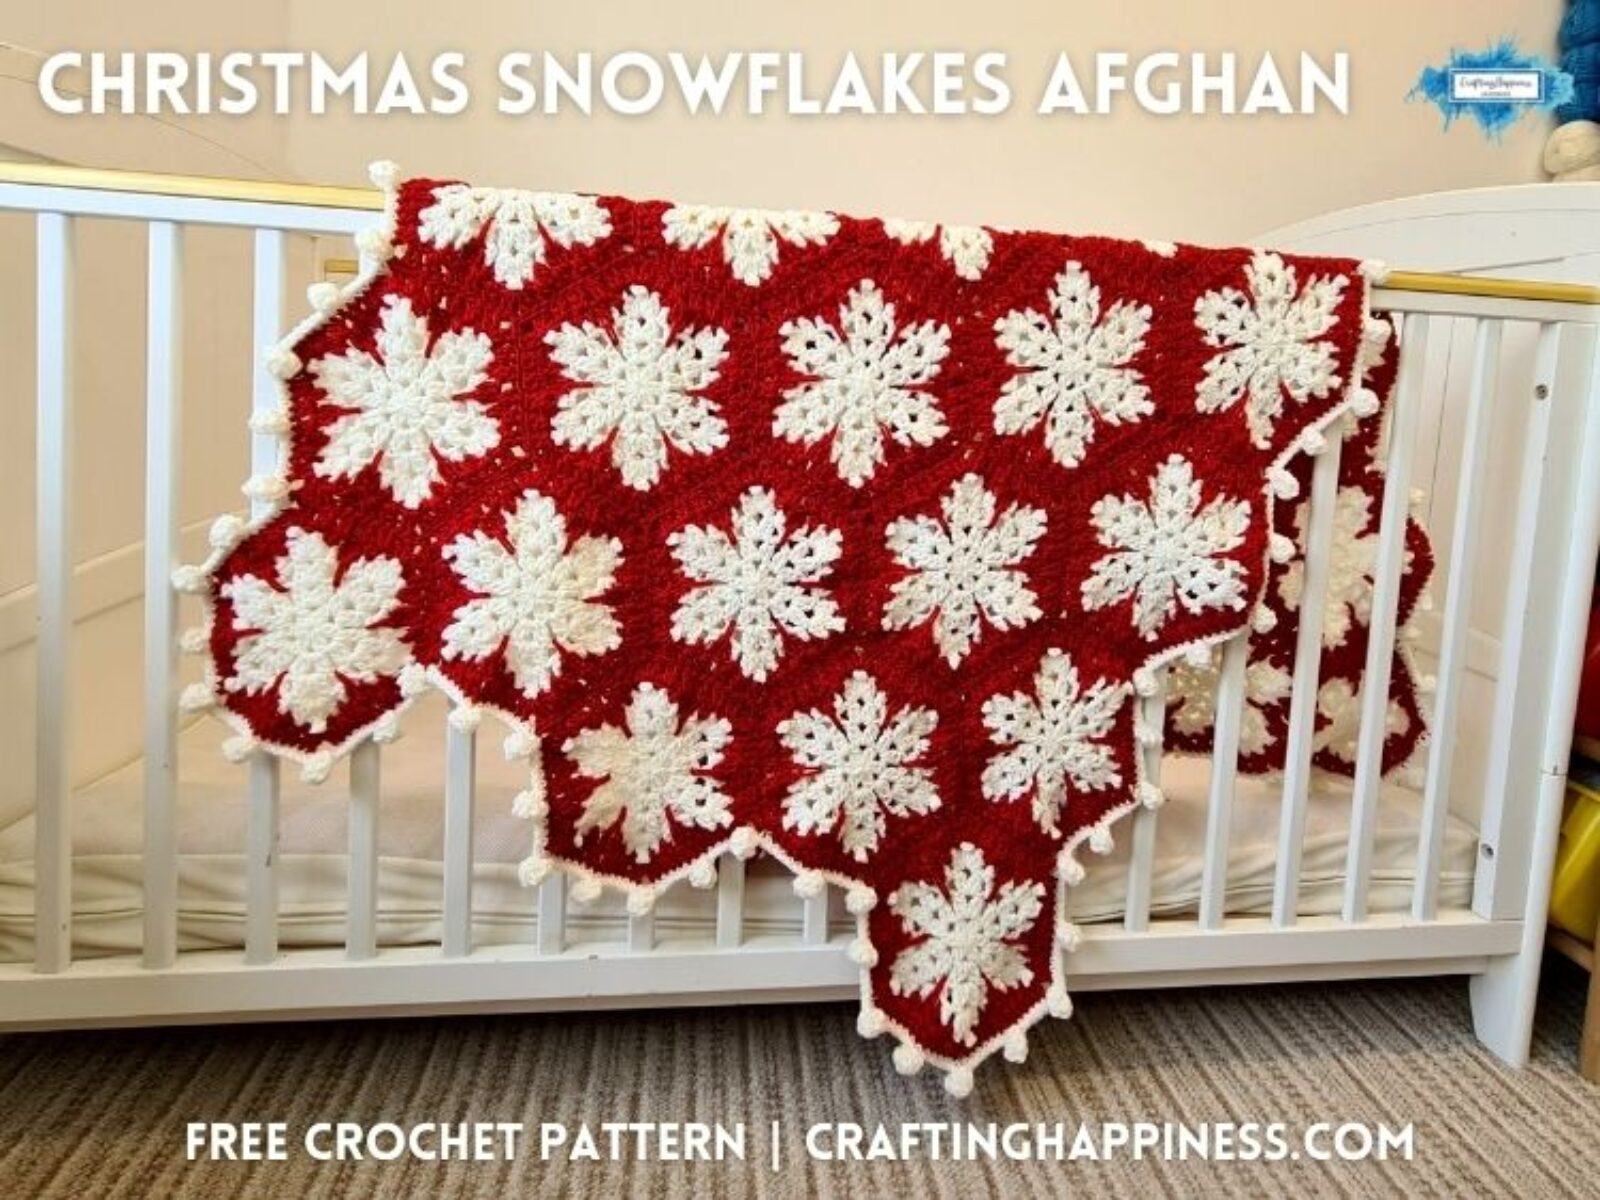 FACEBOOK BLOG POSTER - Christmas Snowflakes Afghan Crafting Happiness